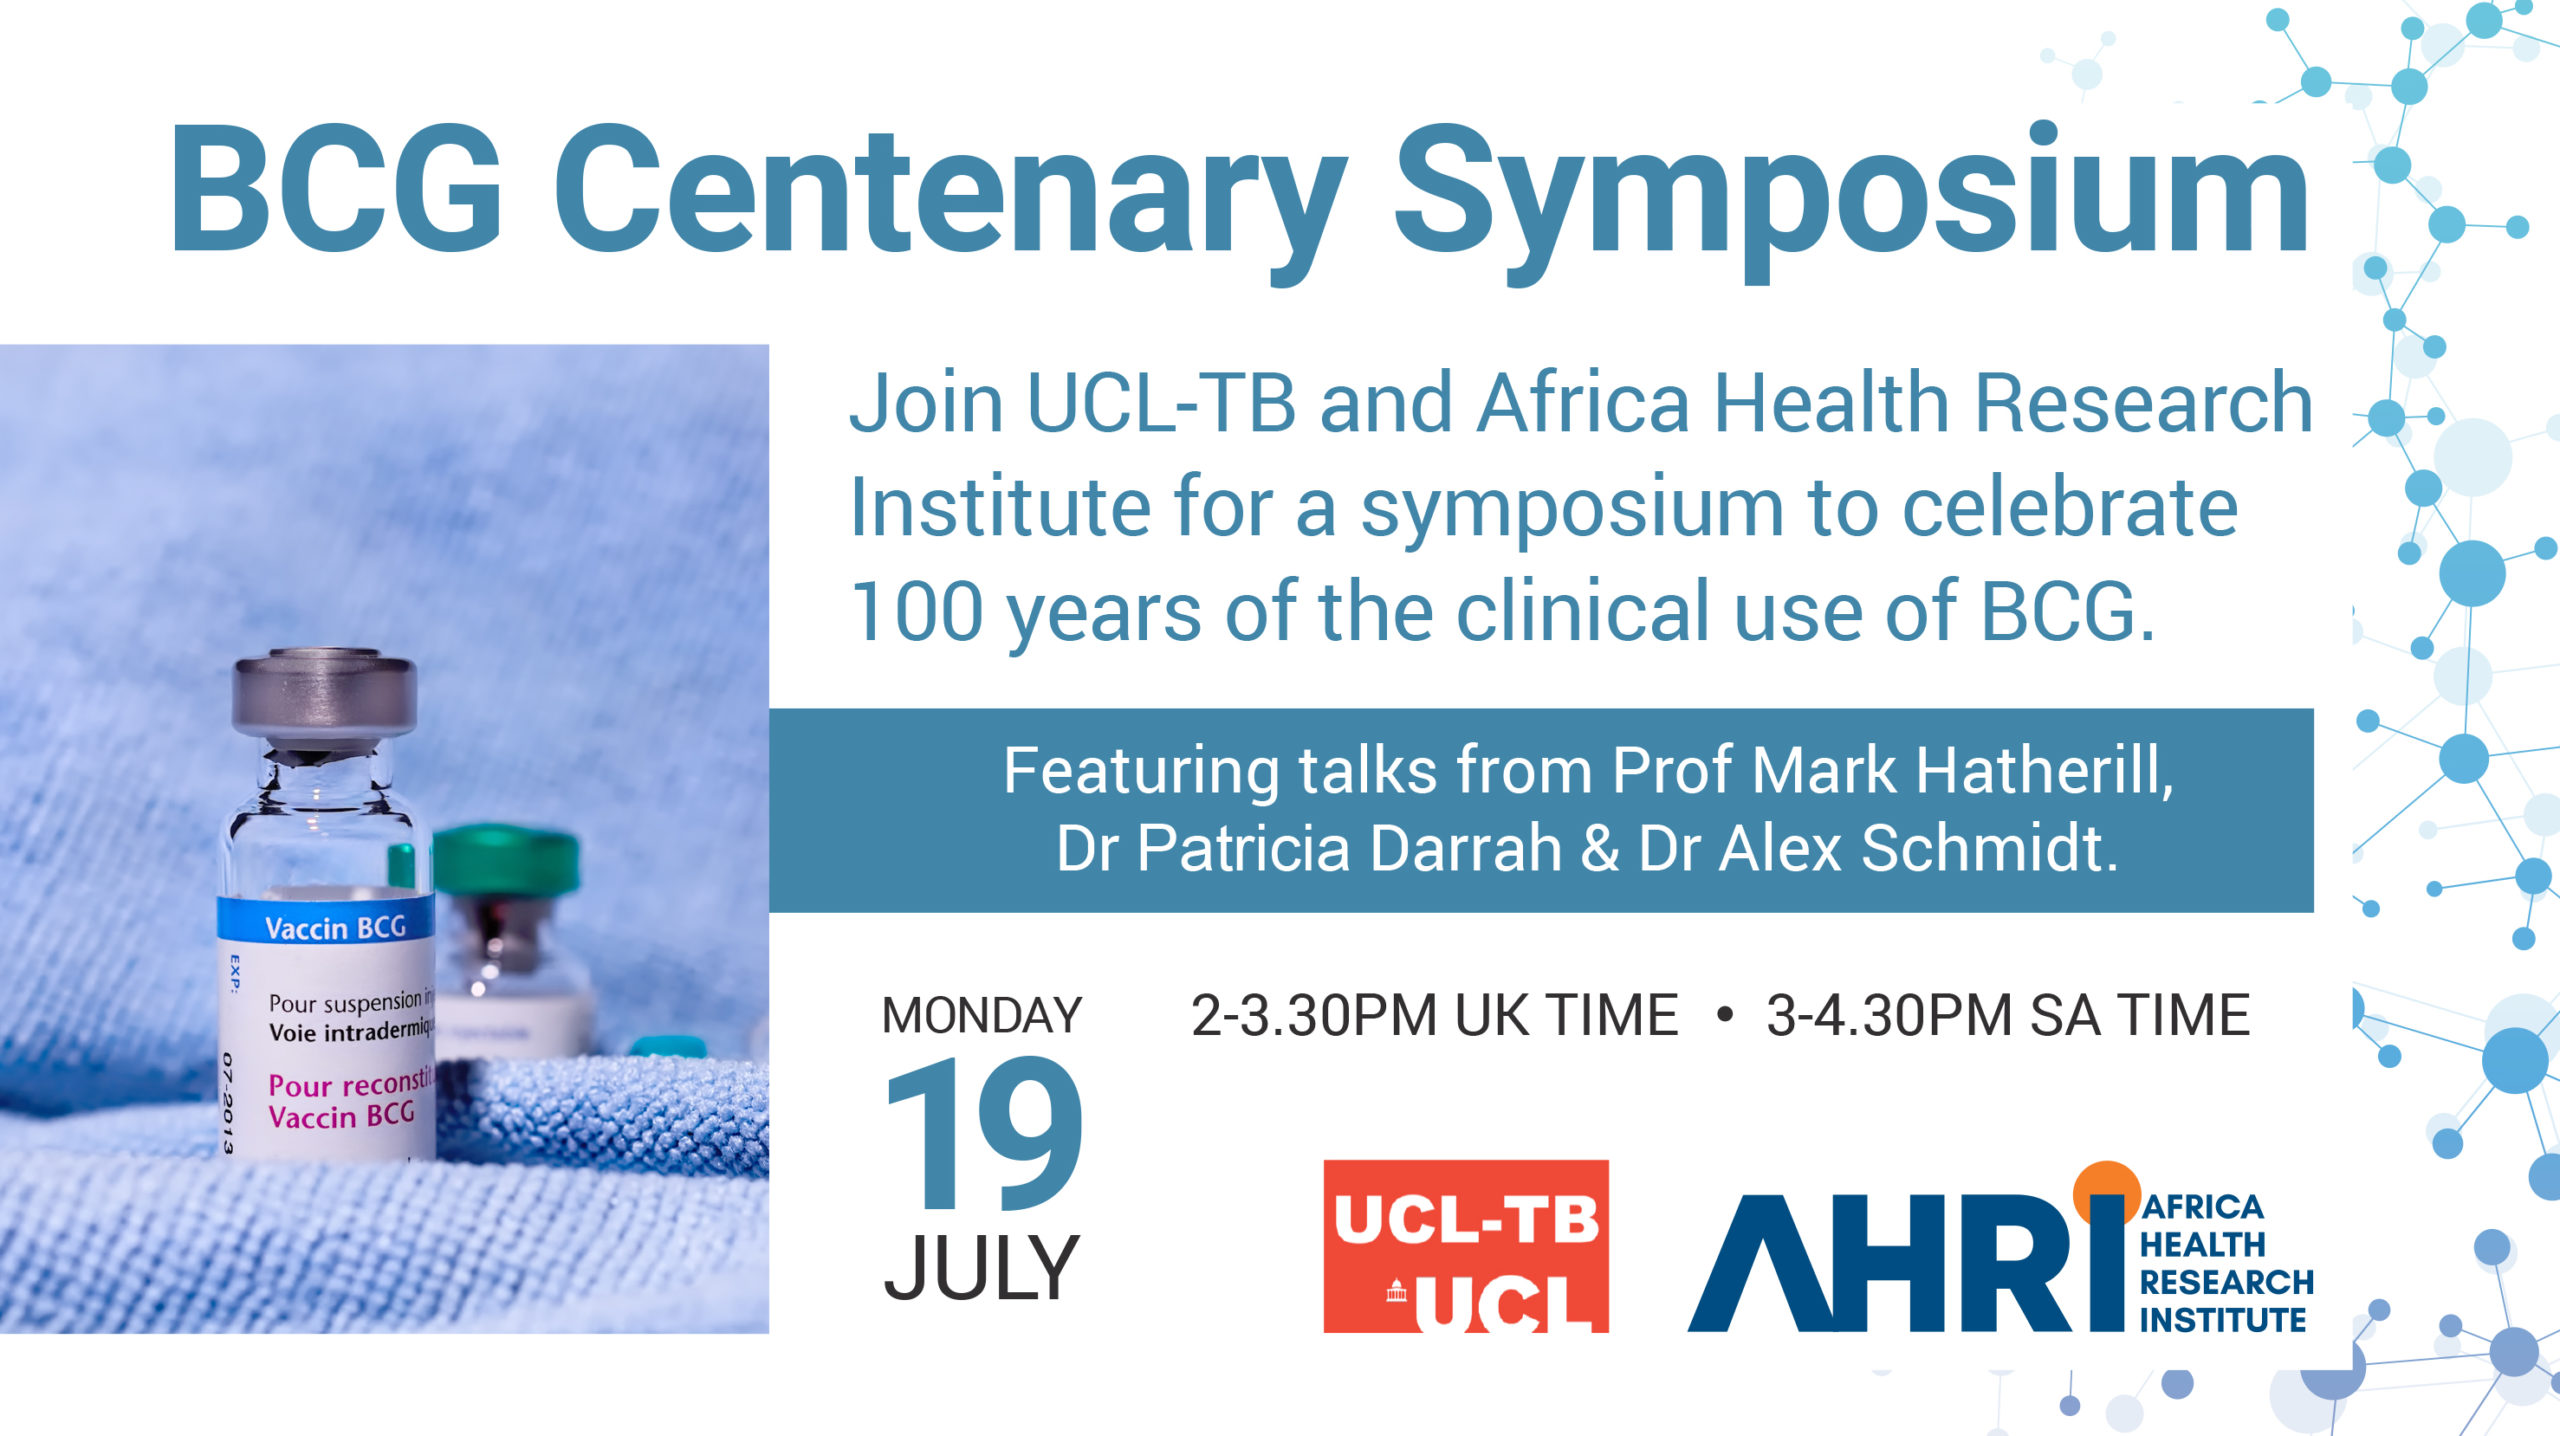 UCL-TB / Africa Health Research Institute host BCG Centenary Symposium